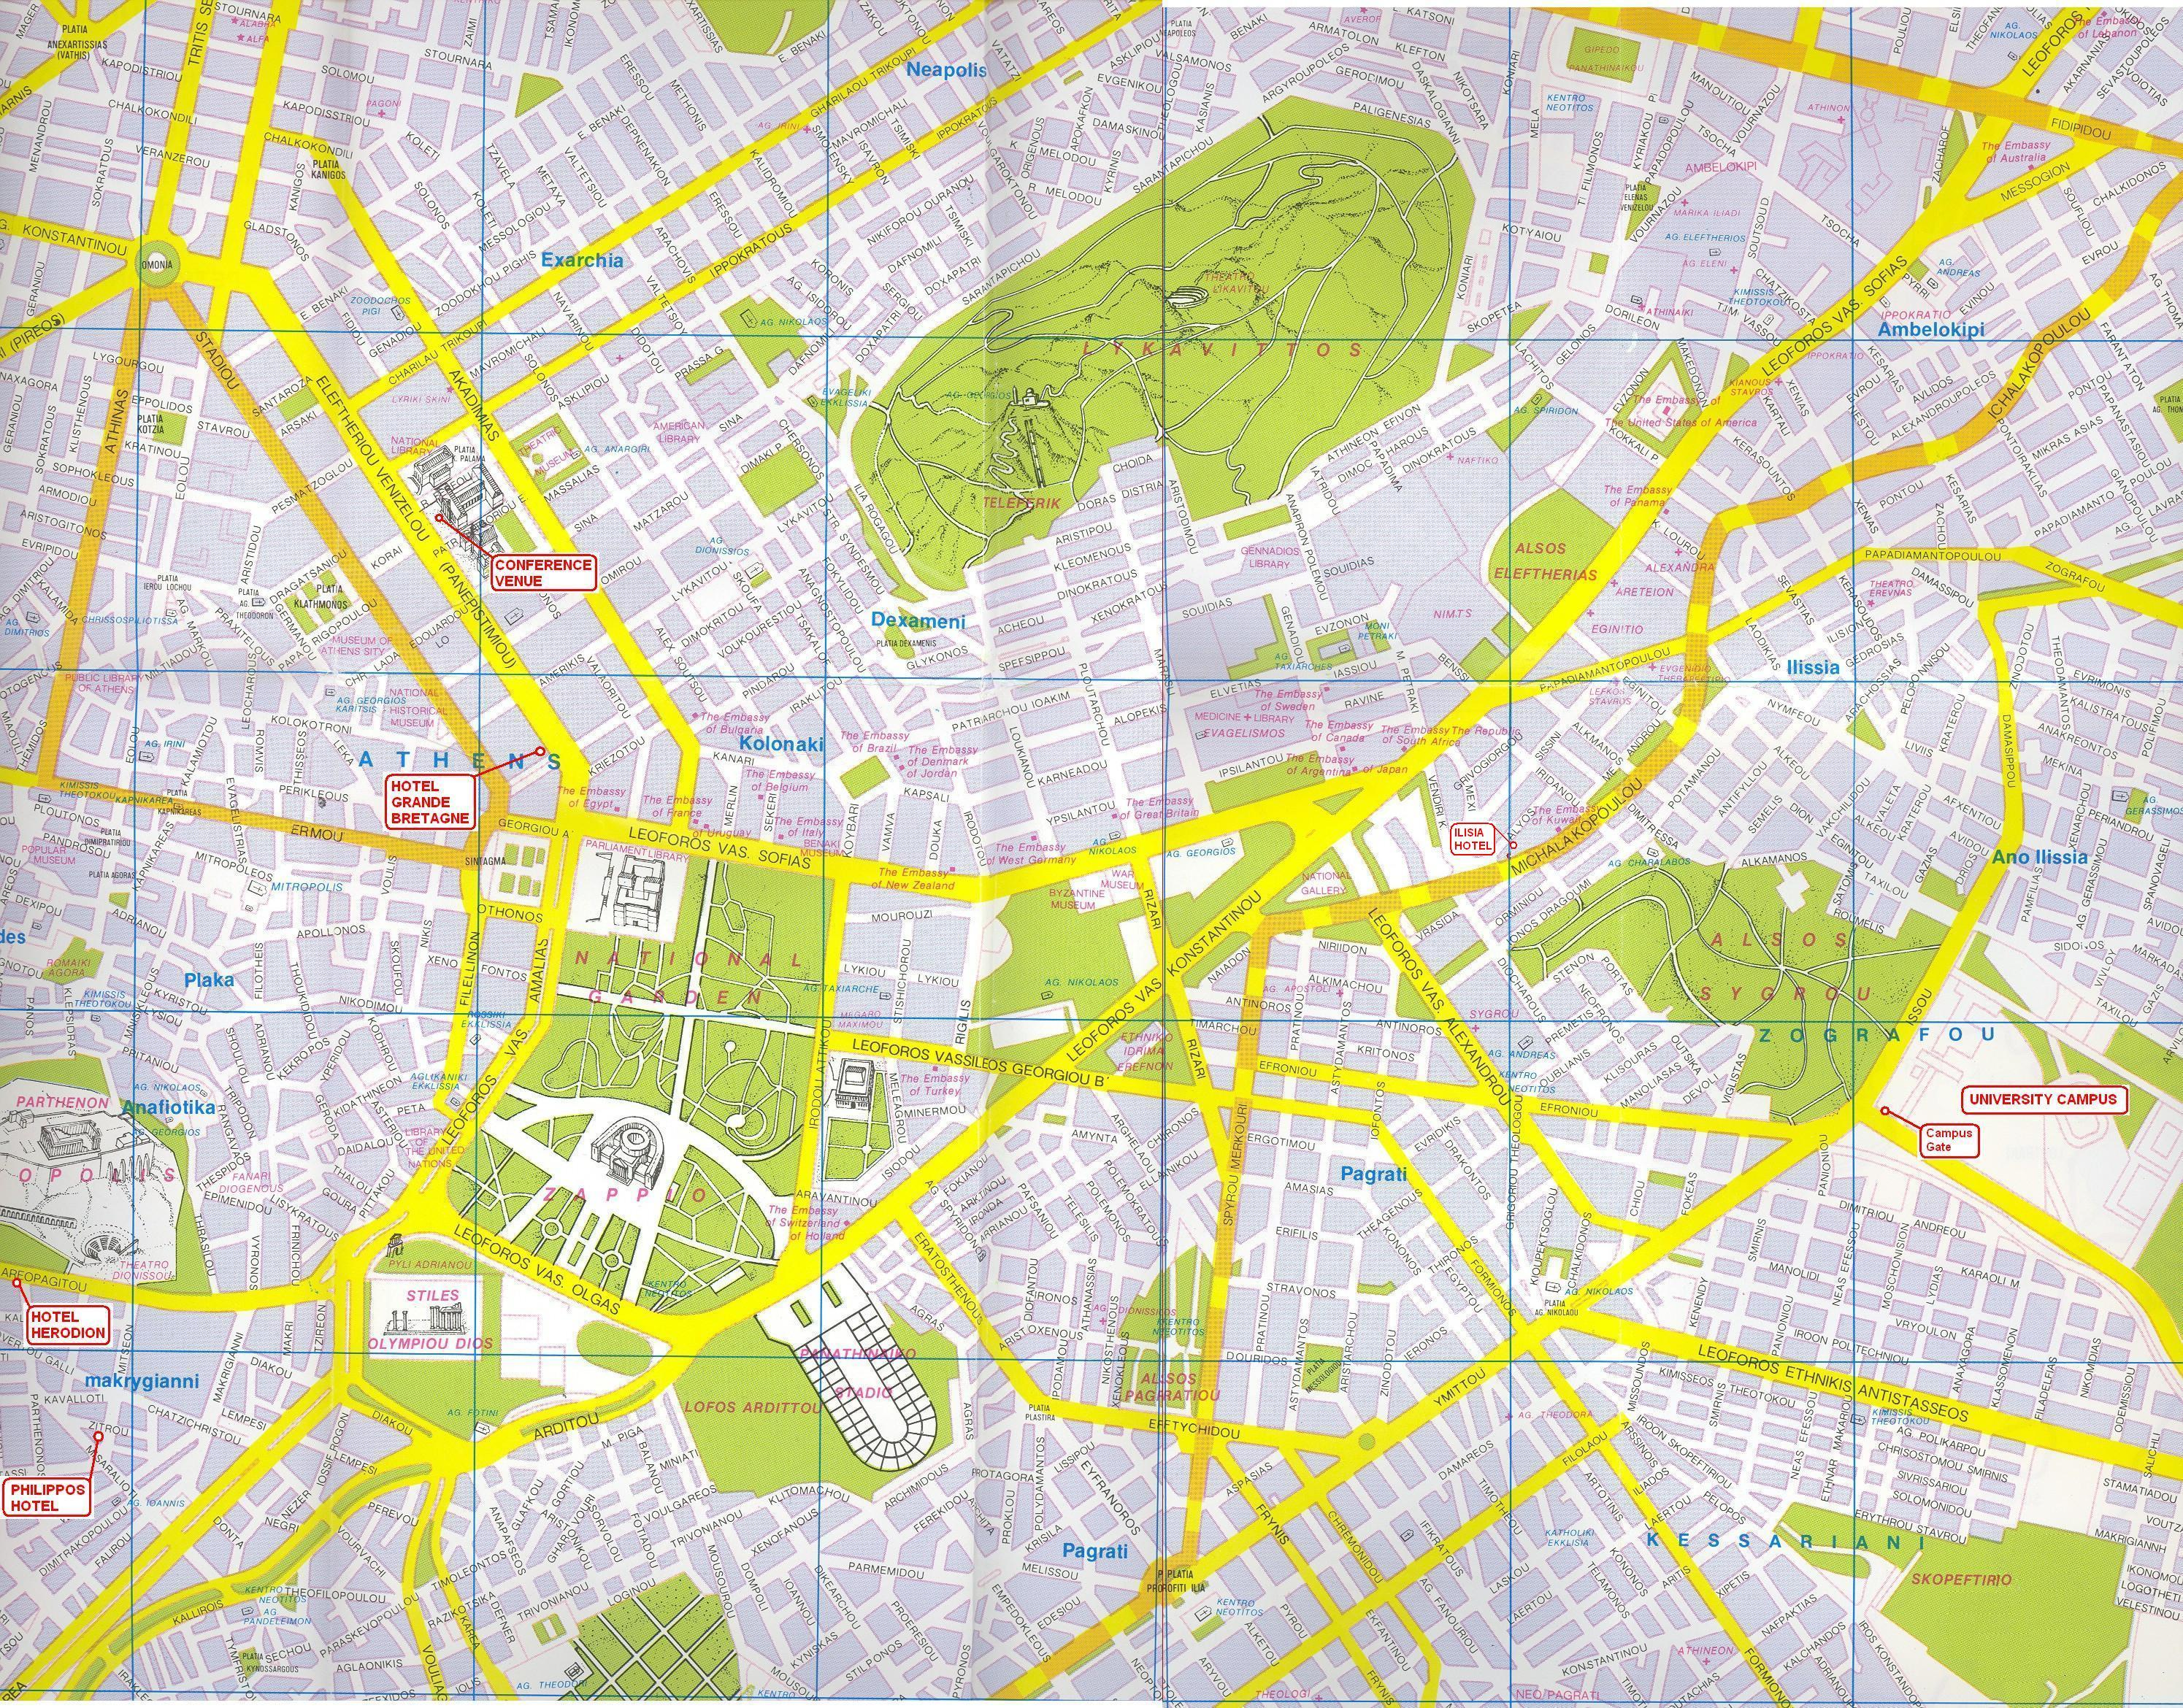 Athens City Map - Athens Greece • mappery